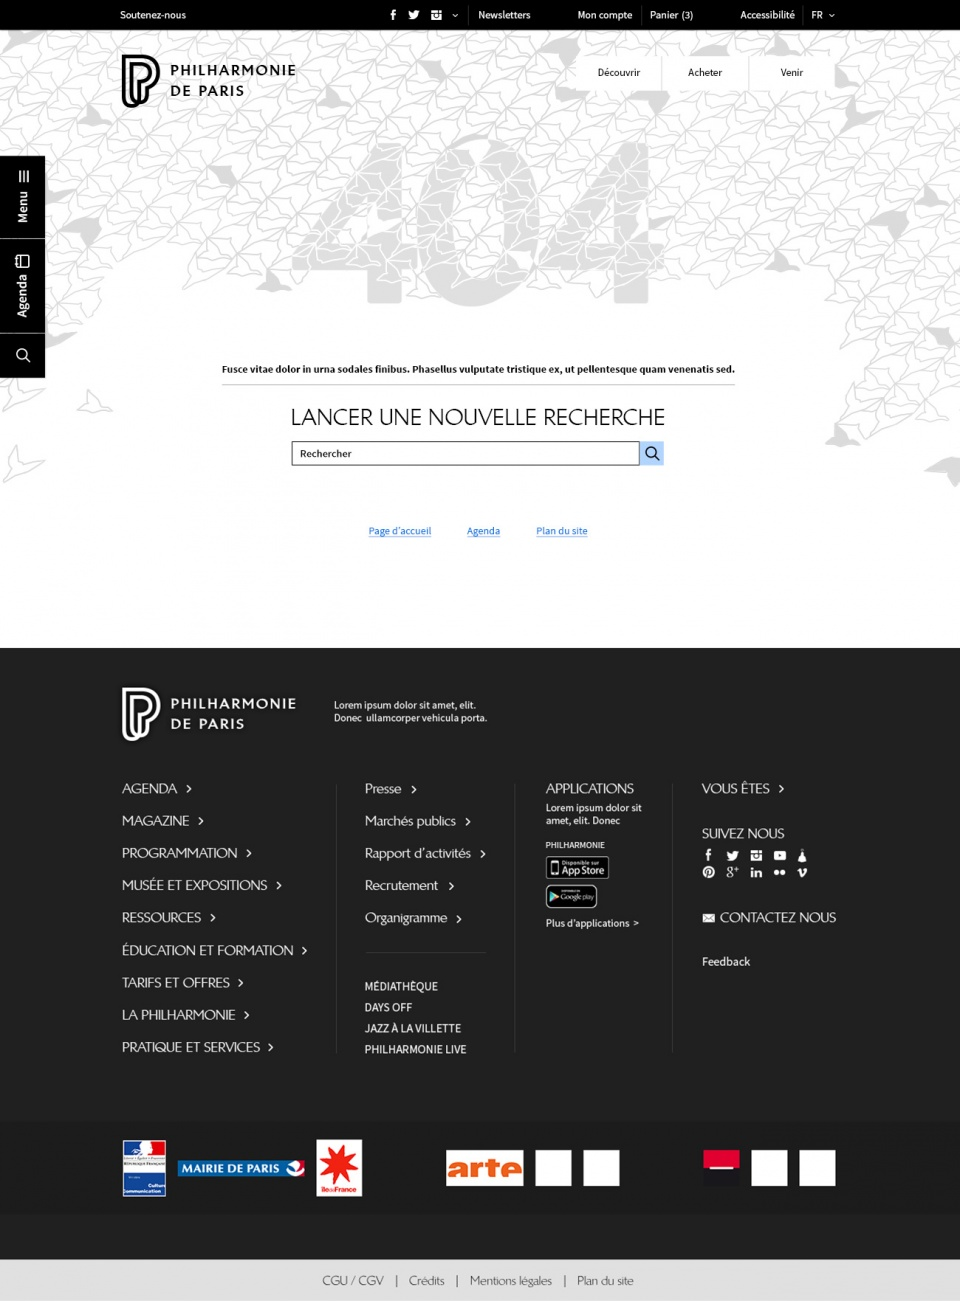 Philharmonie de Paris • Responsive Design